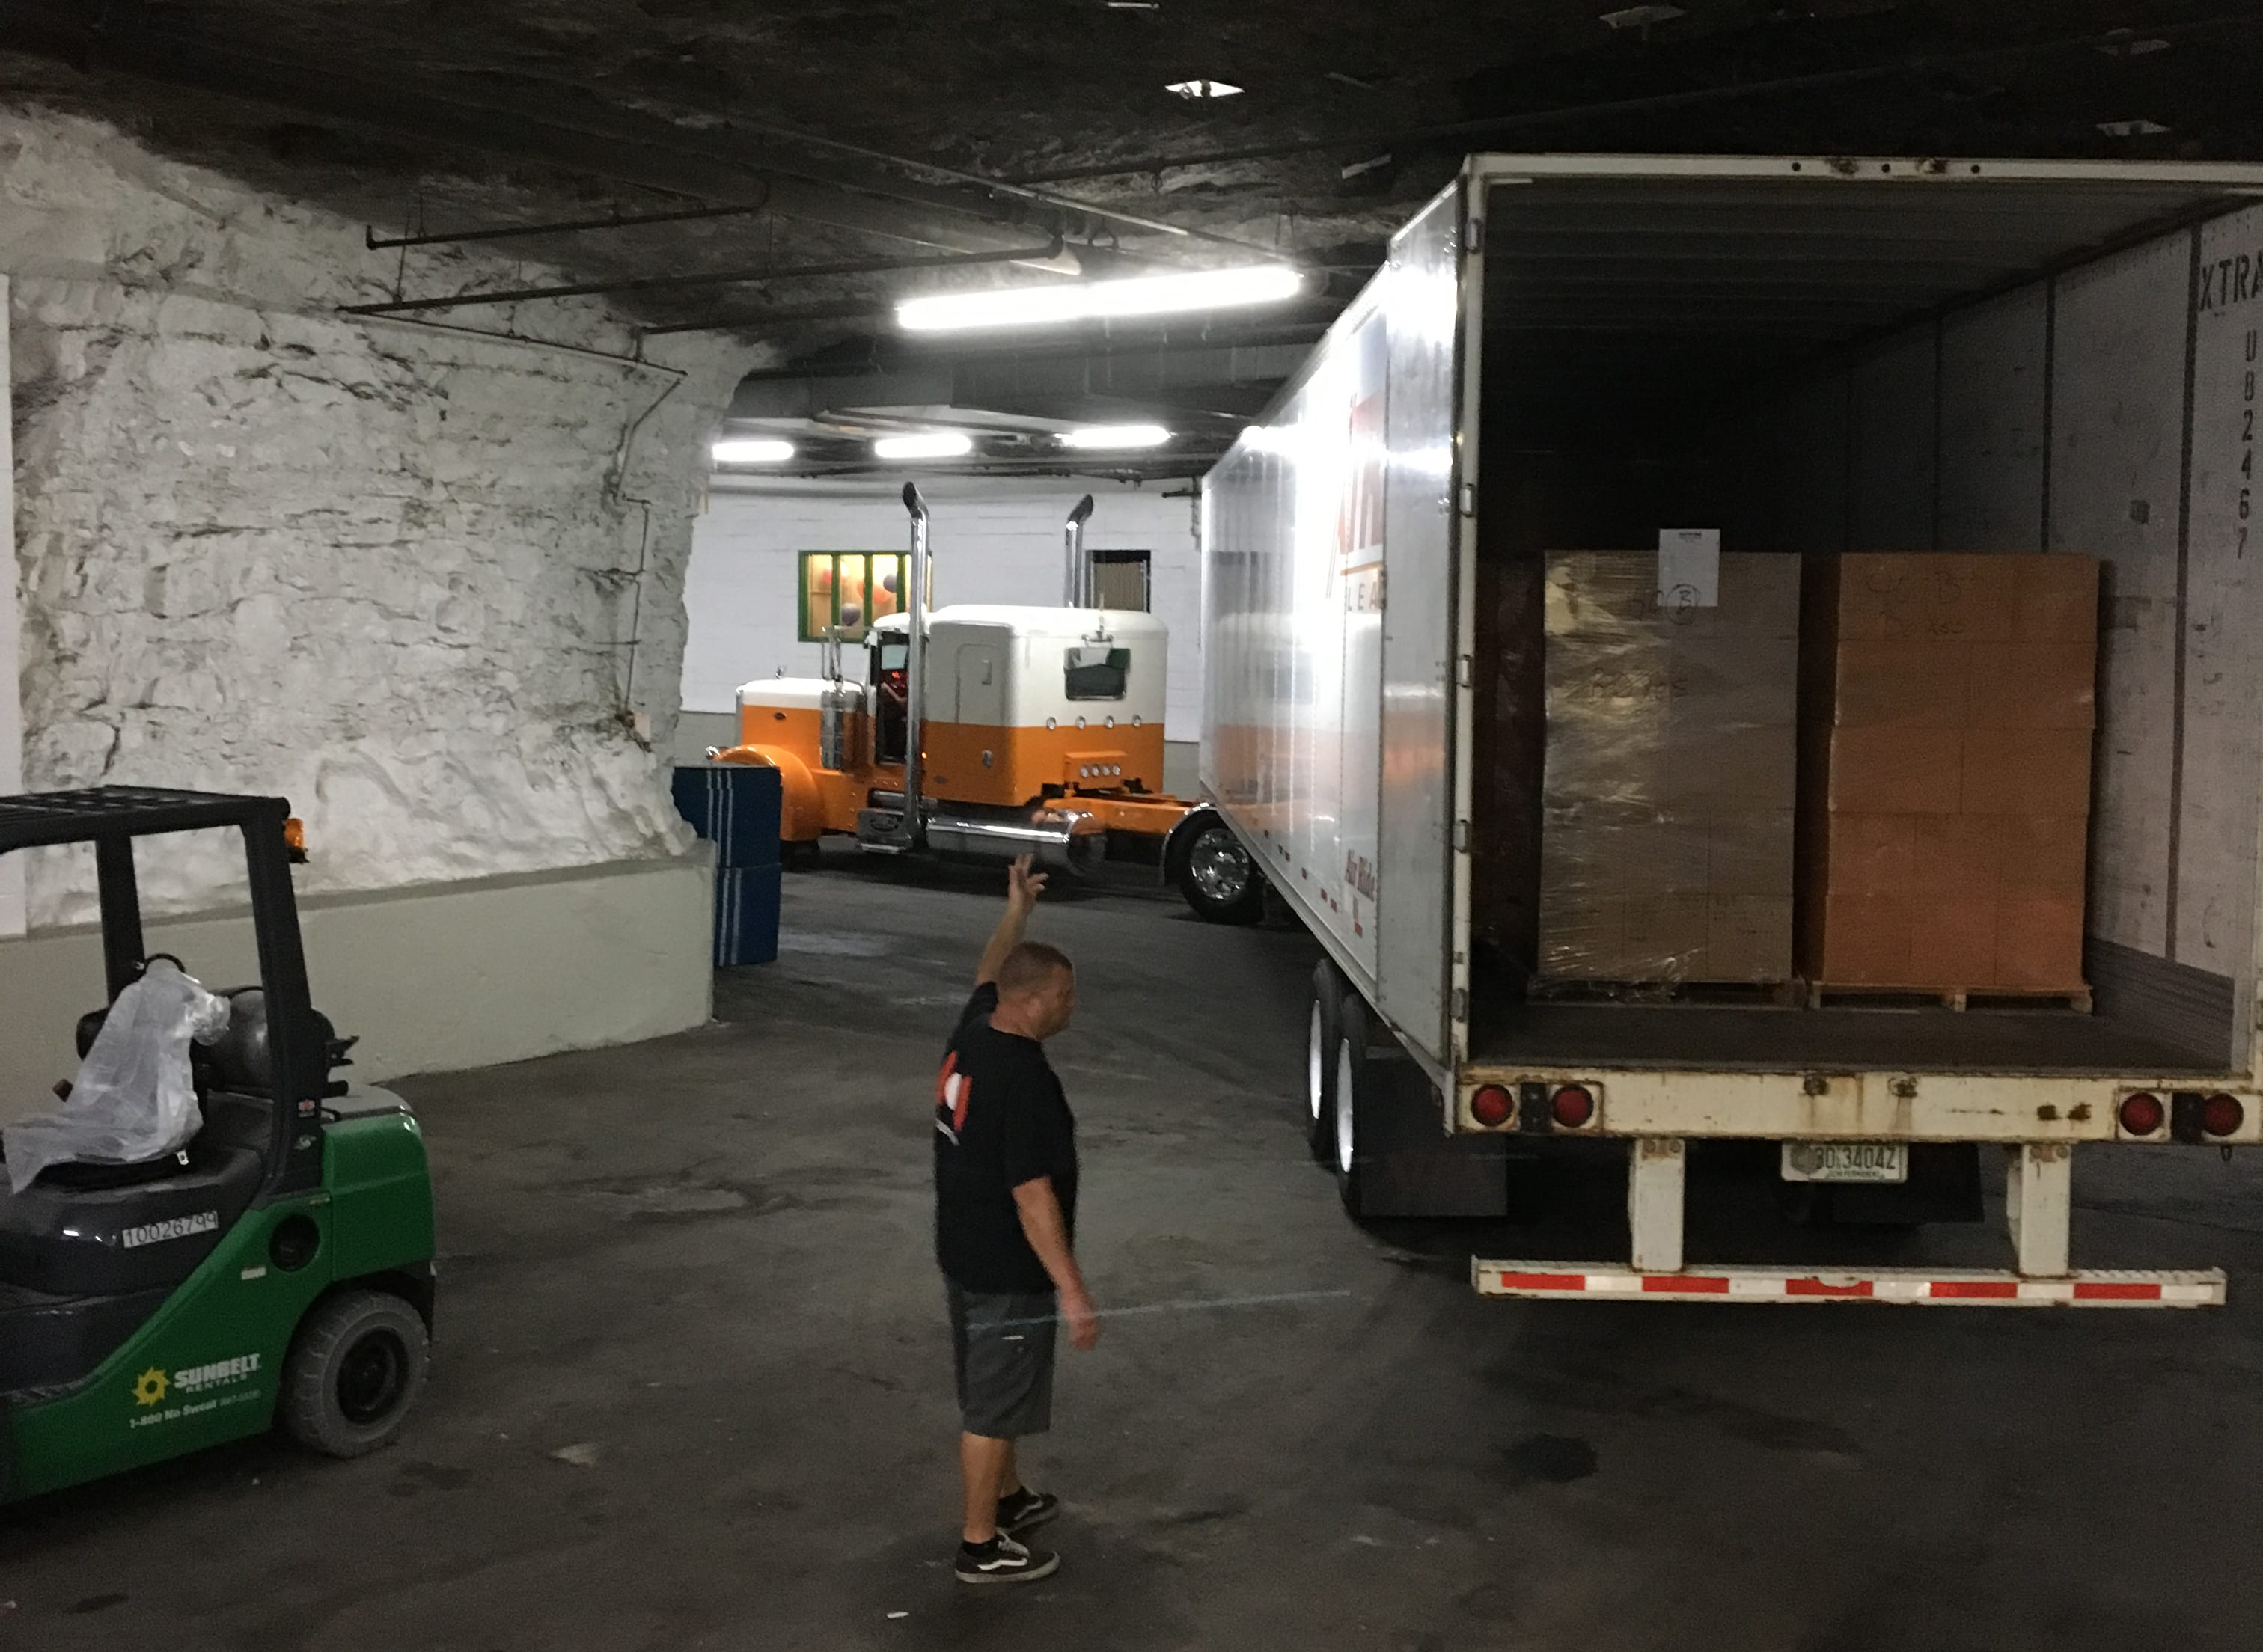 In an underground building with rough white stone walls, a man in a black t-shirt and shorts stands by the tail-end of an open semi trailer and directs the driver on backing up.